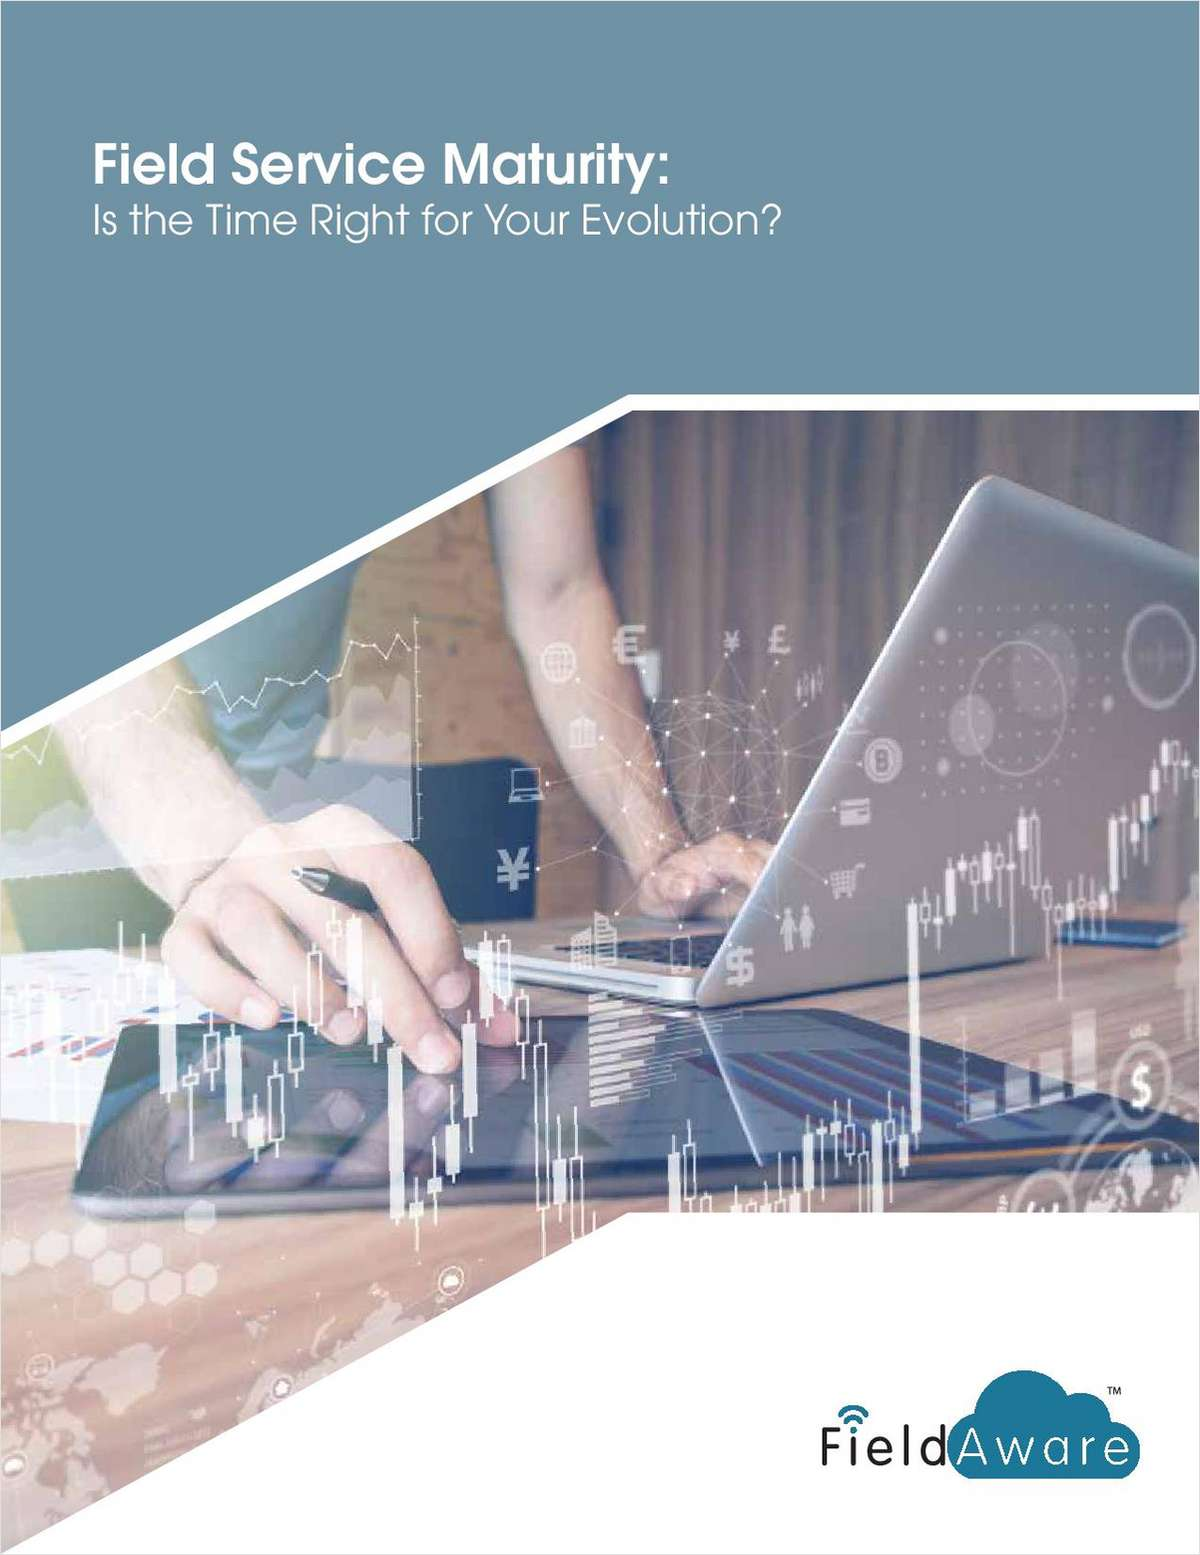 Field Service Maturity: Is the Time Right for Your Evolution?